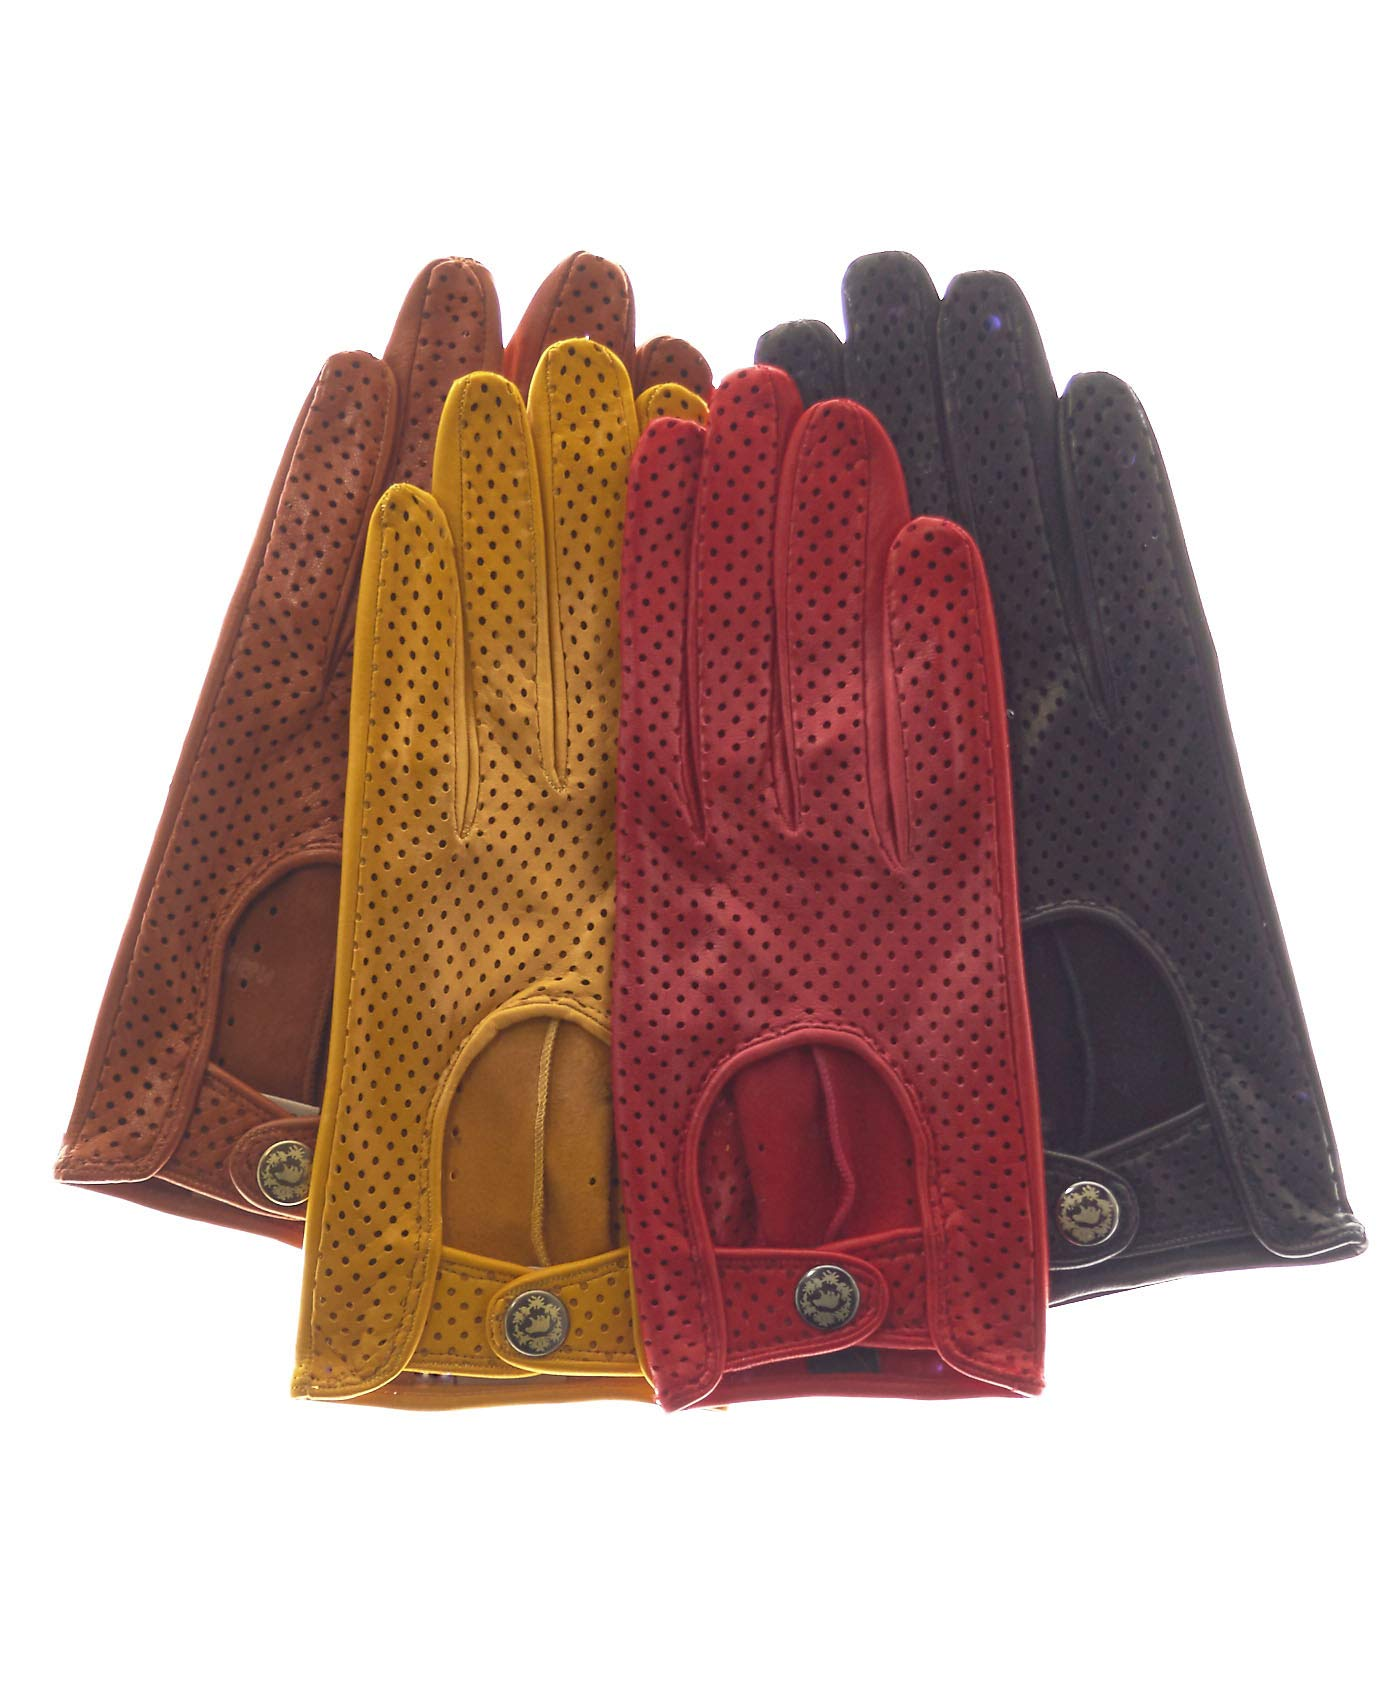 Fratelli Orsini Women's Ventilated Leather Driving Gloves Size 7 1/2 Color Black